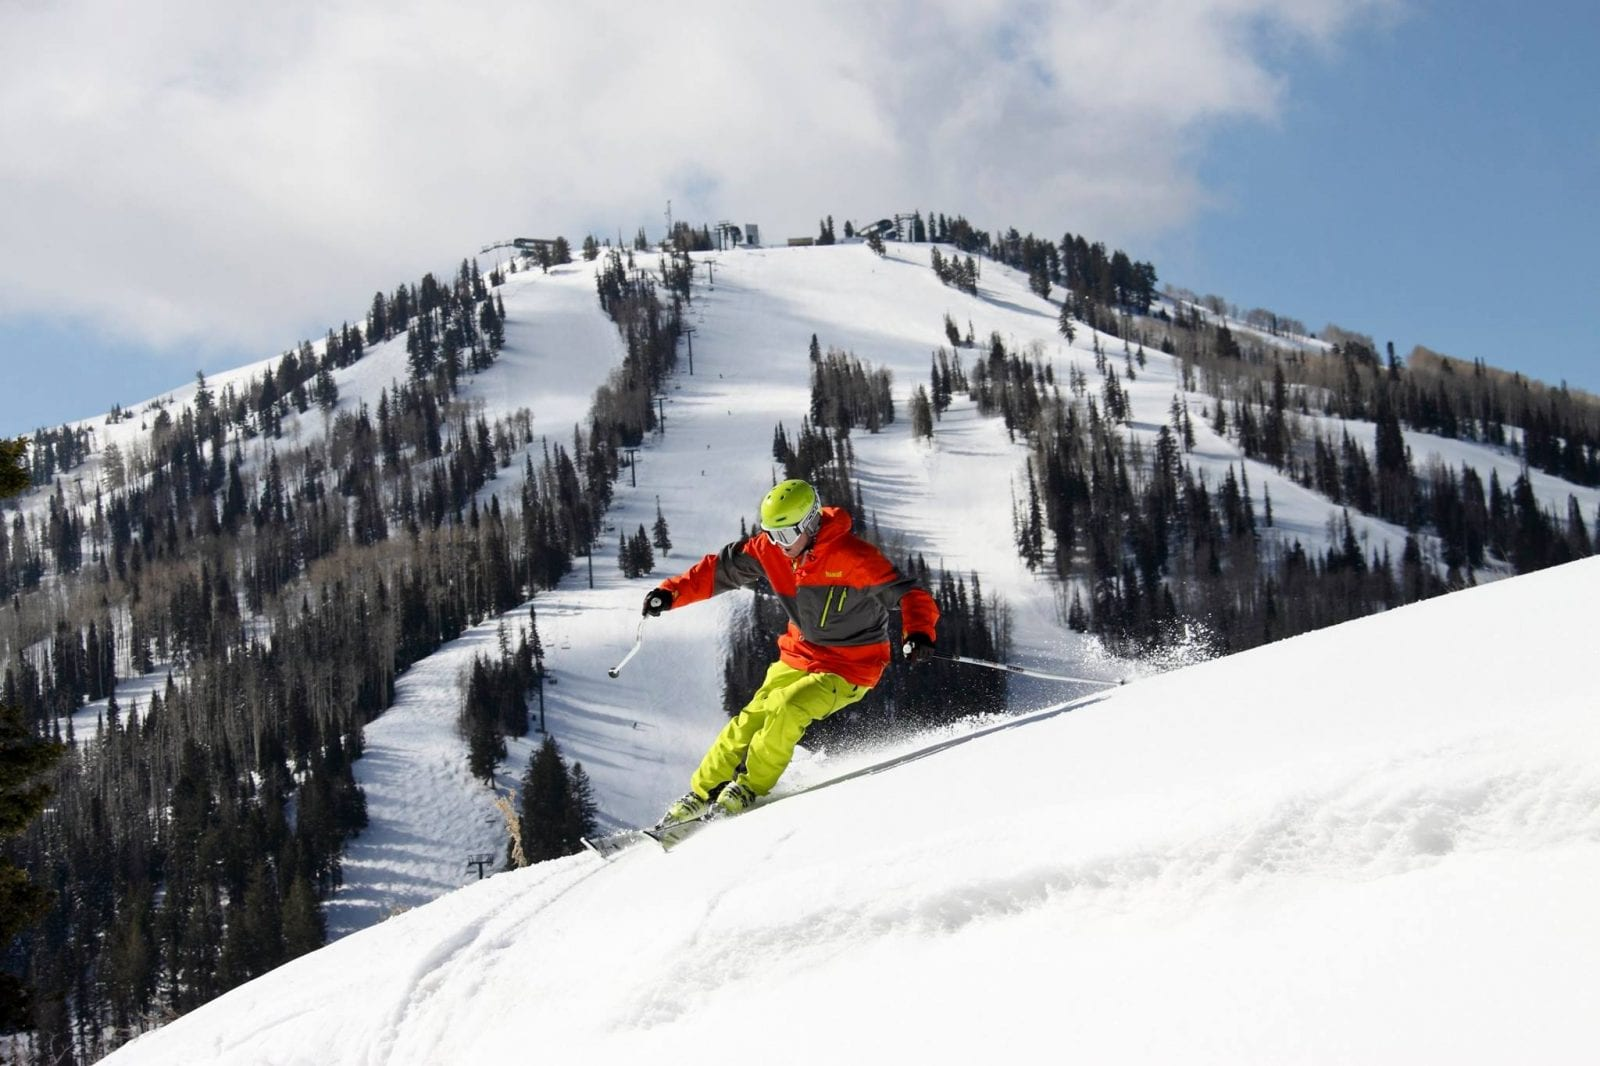 Skier wearing bright colors, going down the slopes at Deer Valley Resort in Utah